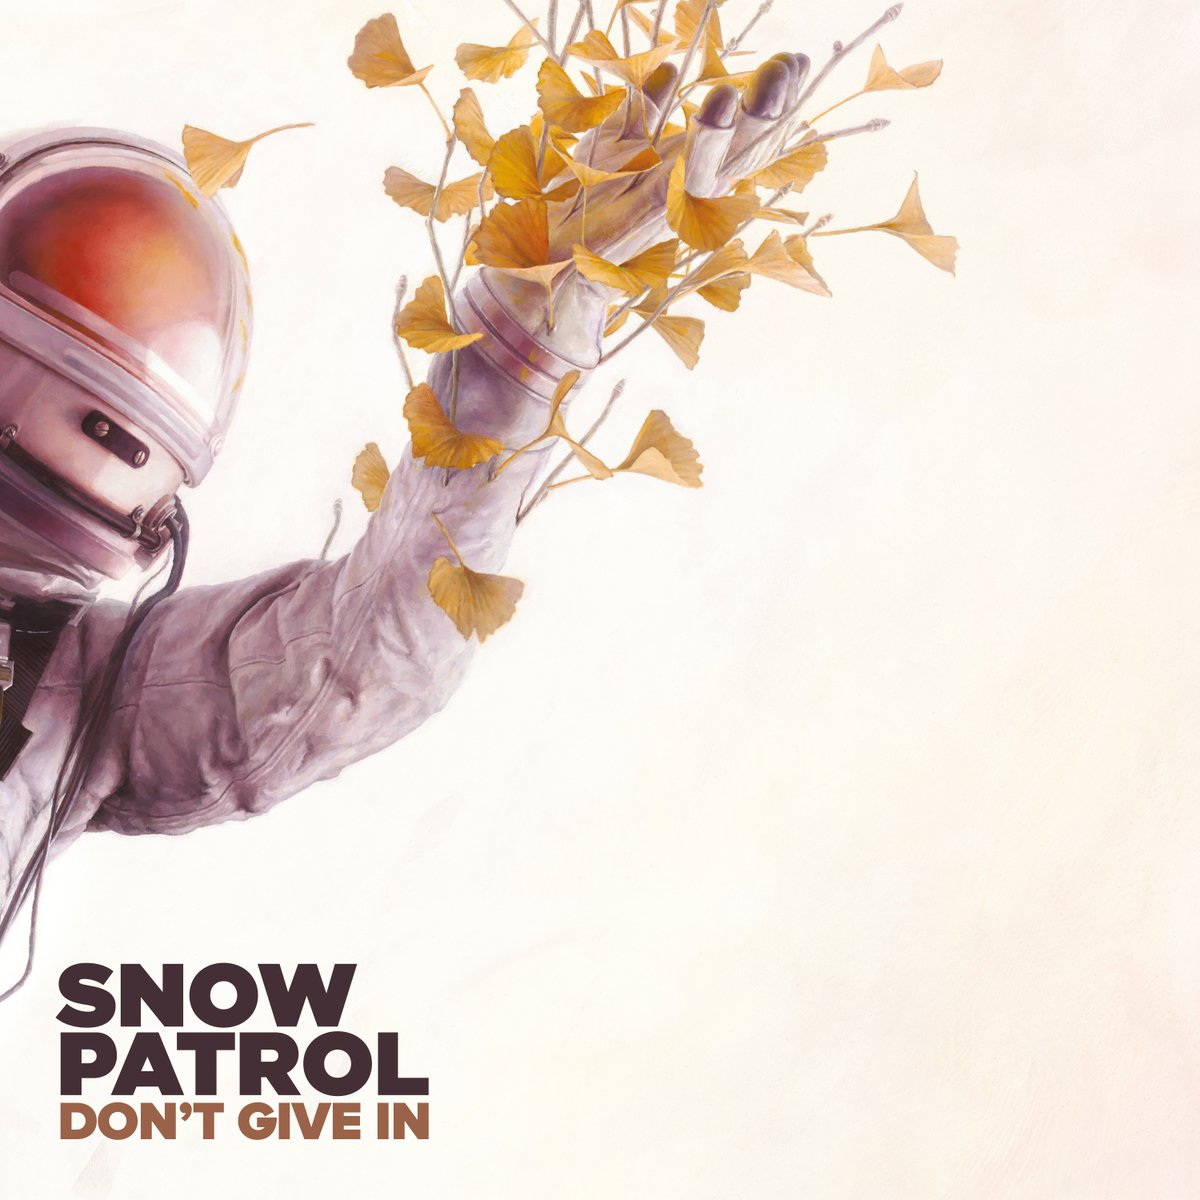 Snow Patrol Don't Give In single artwork